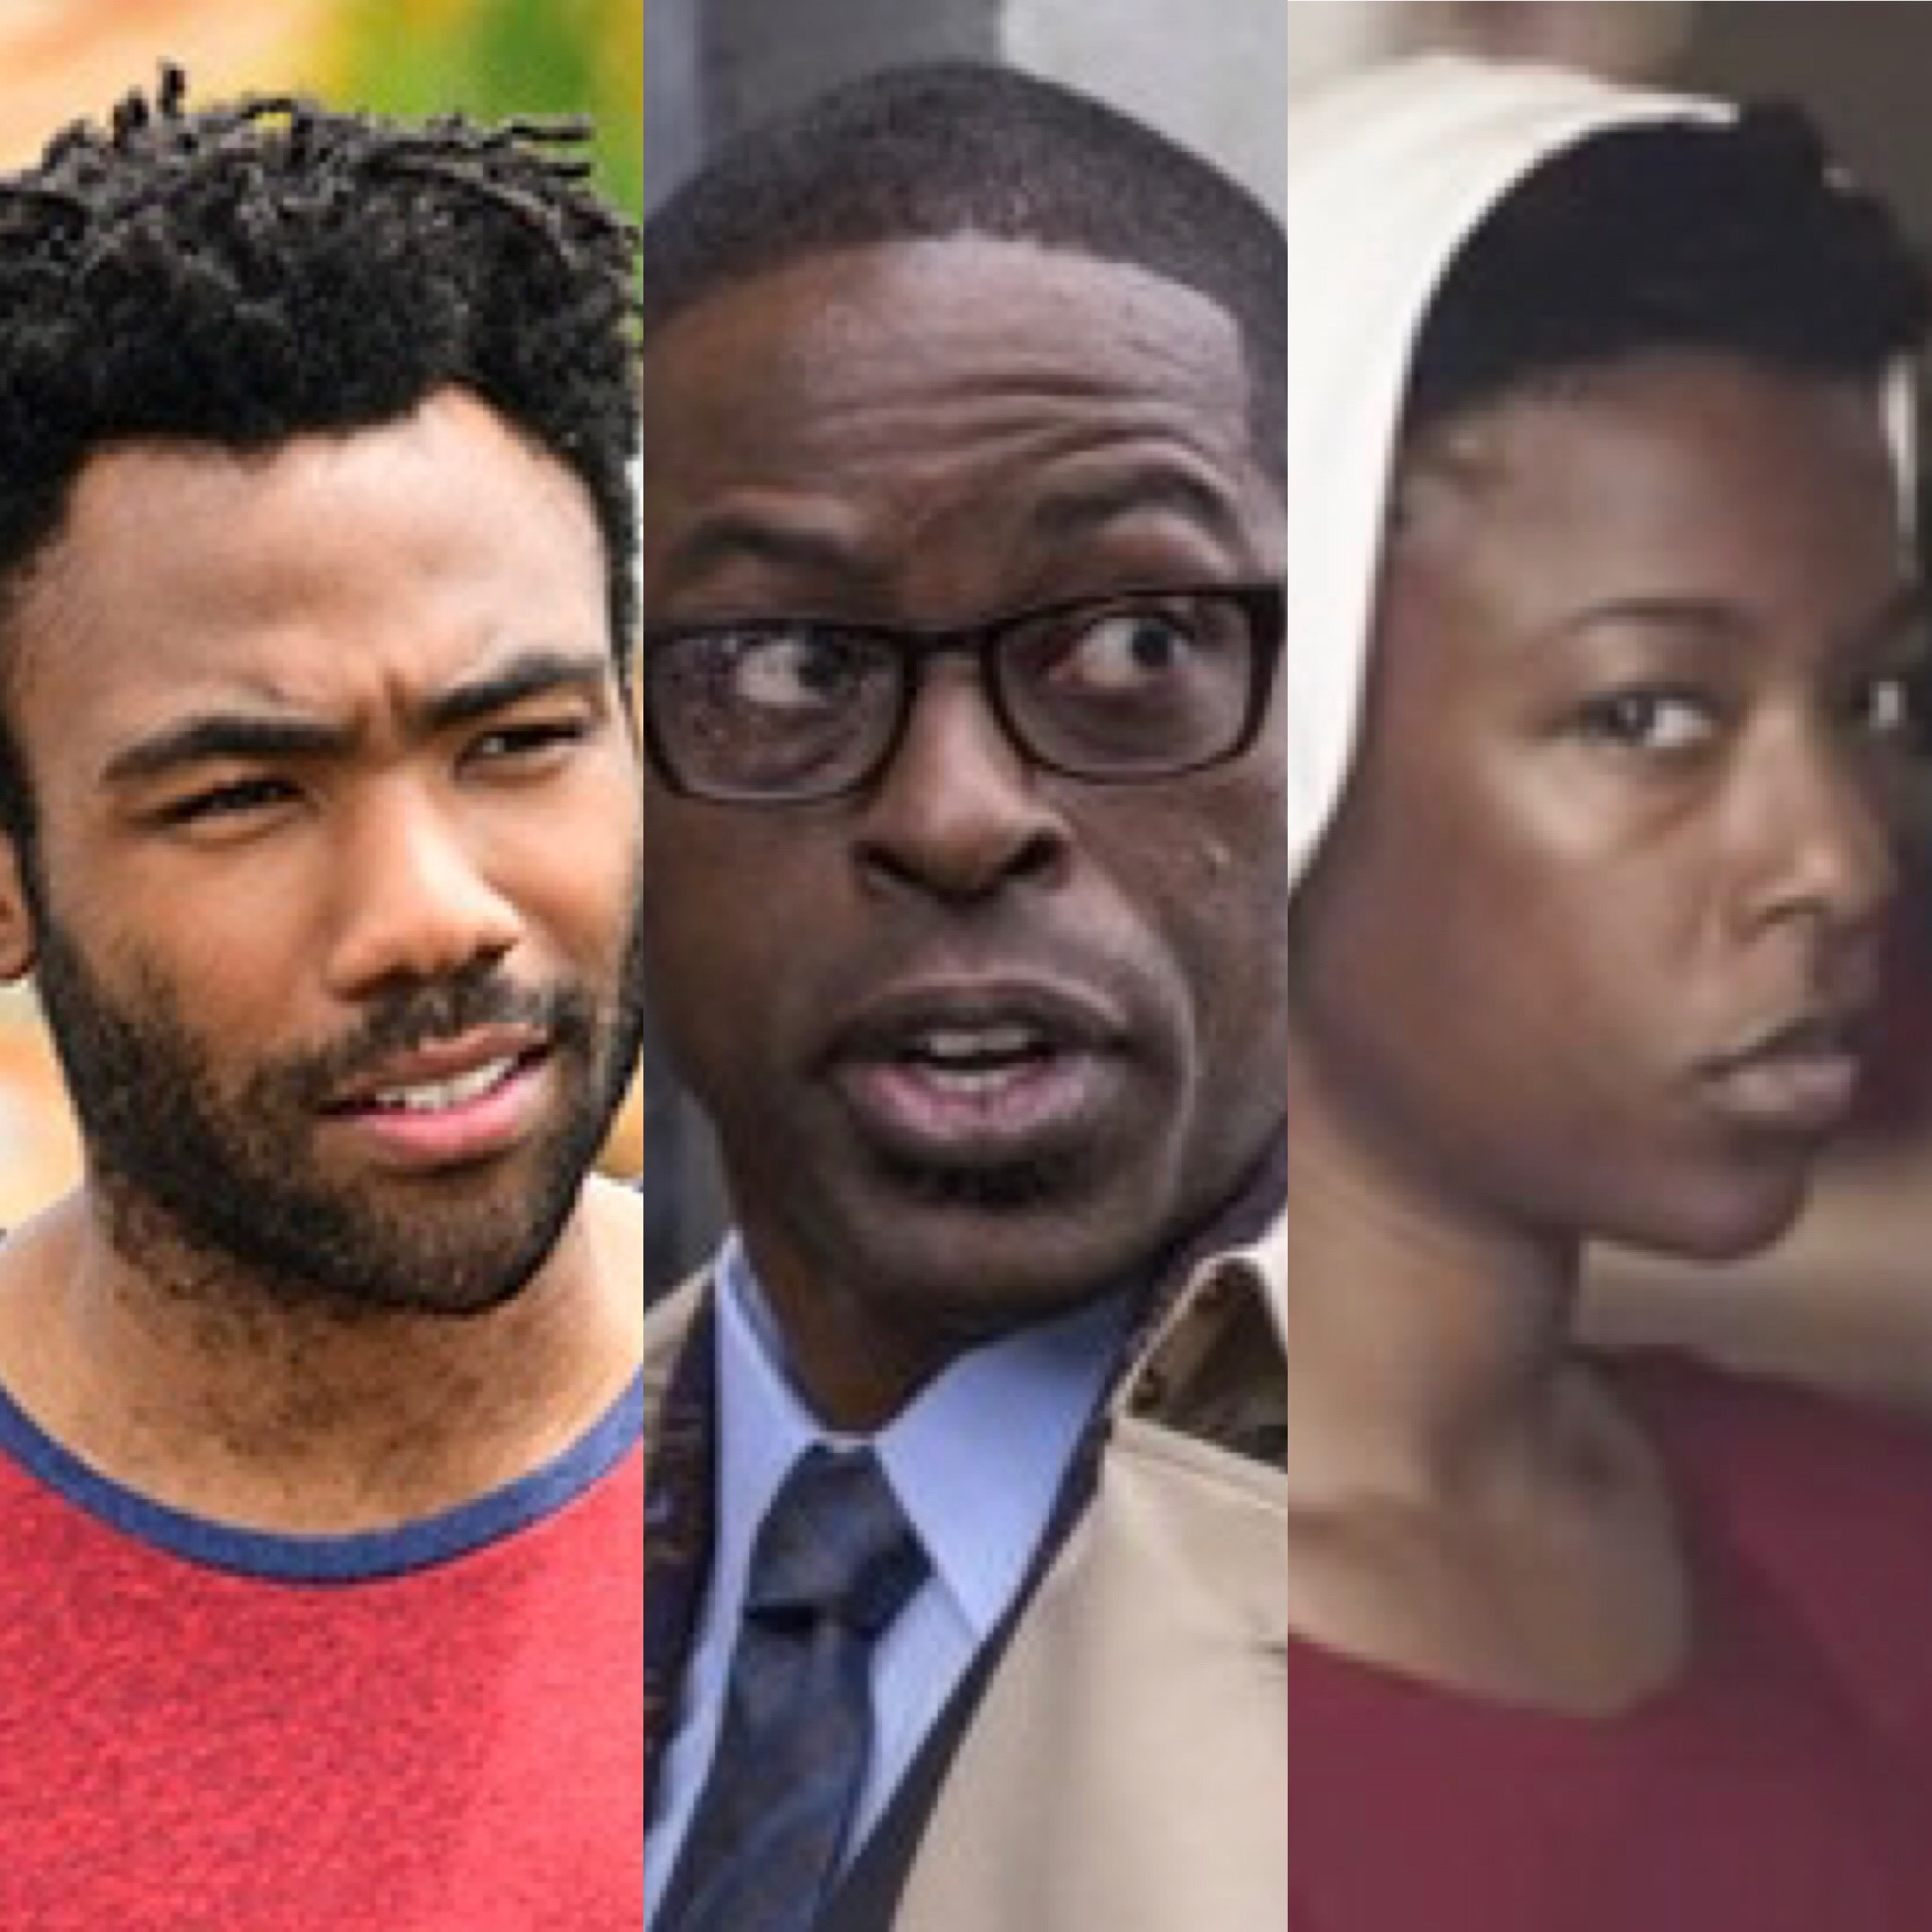 L-R: Donald Glover (Atlanta), Sterling K. Brown (This Is Us), Samira Wiley (The Handmaid's Tale)